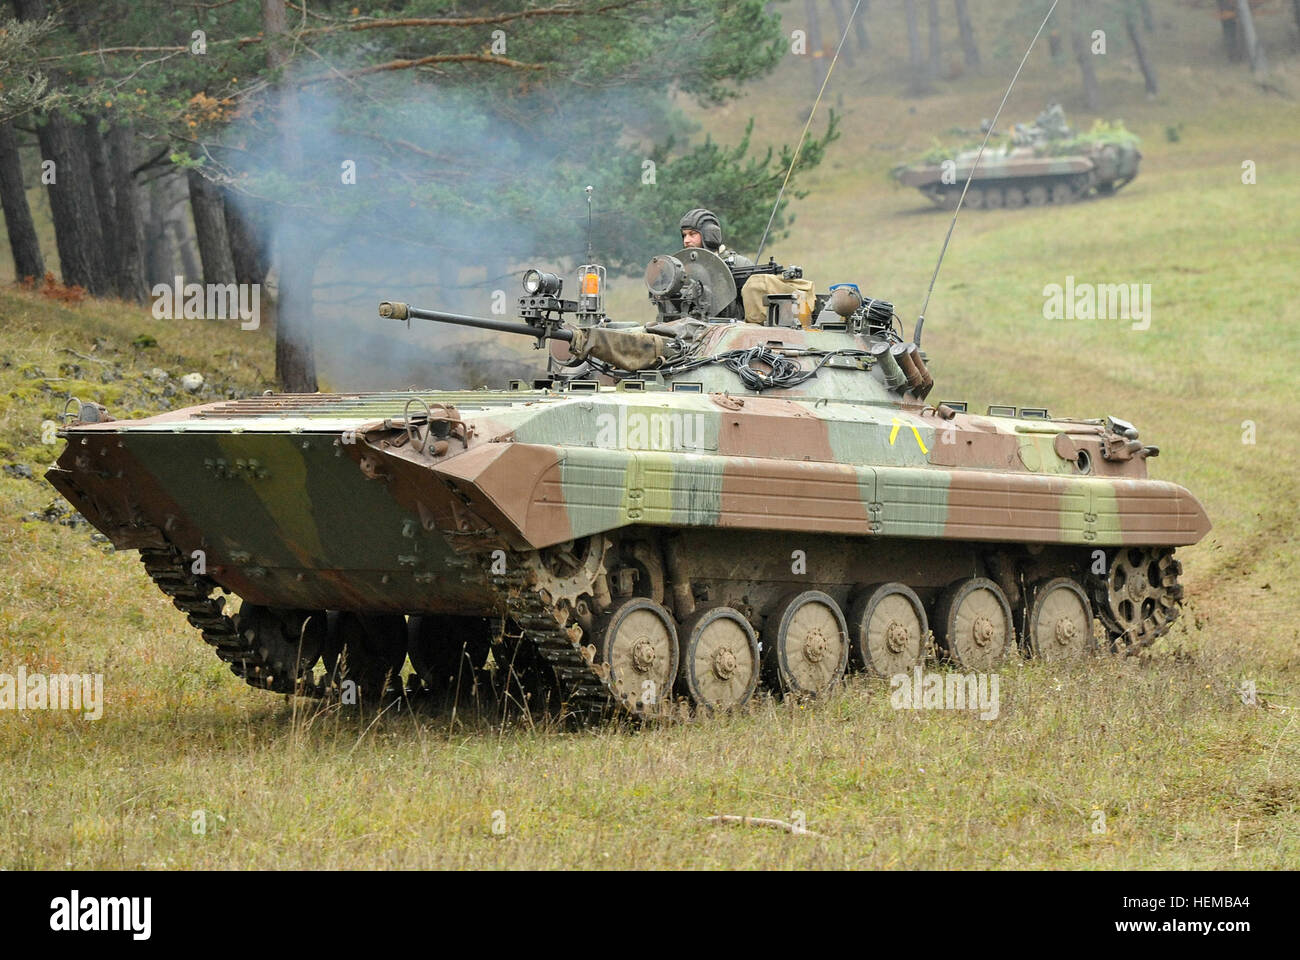 Multinational opposing forces or 'OPFOR' vehicles move into a fighting position during Saber Junction 2012 - Stock Image